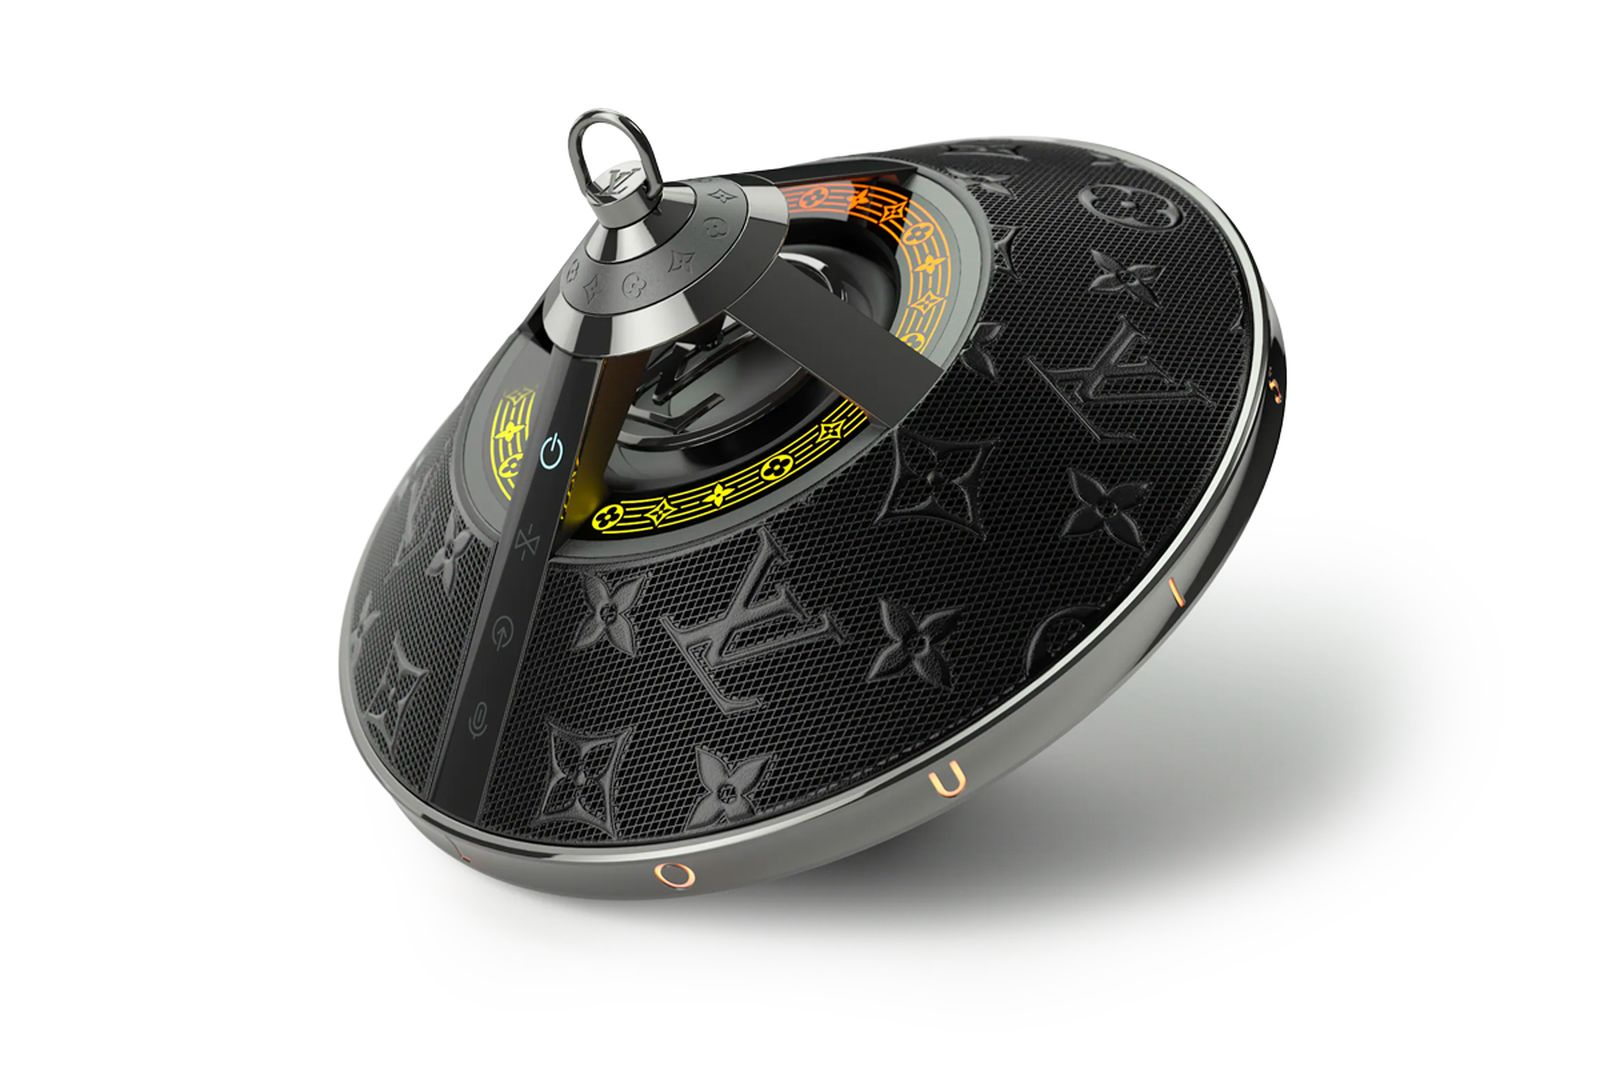 louis-vuitton-sold-3000-3000-ufo-speakers-on-the-first-day-alone-07